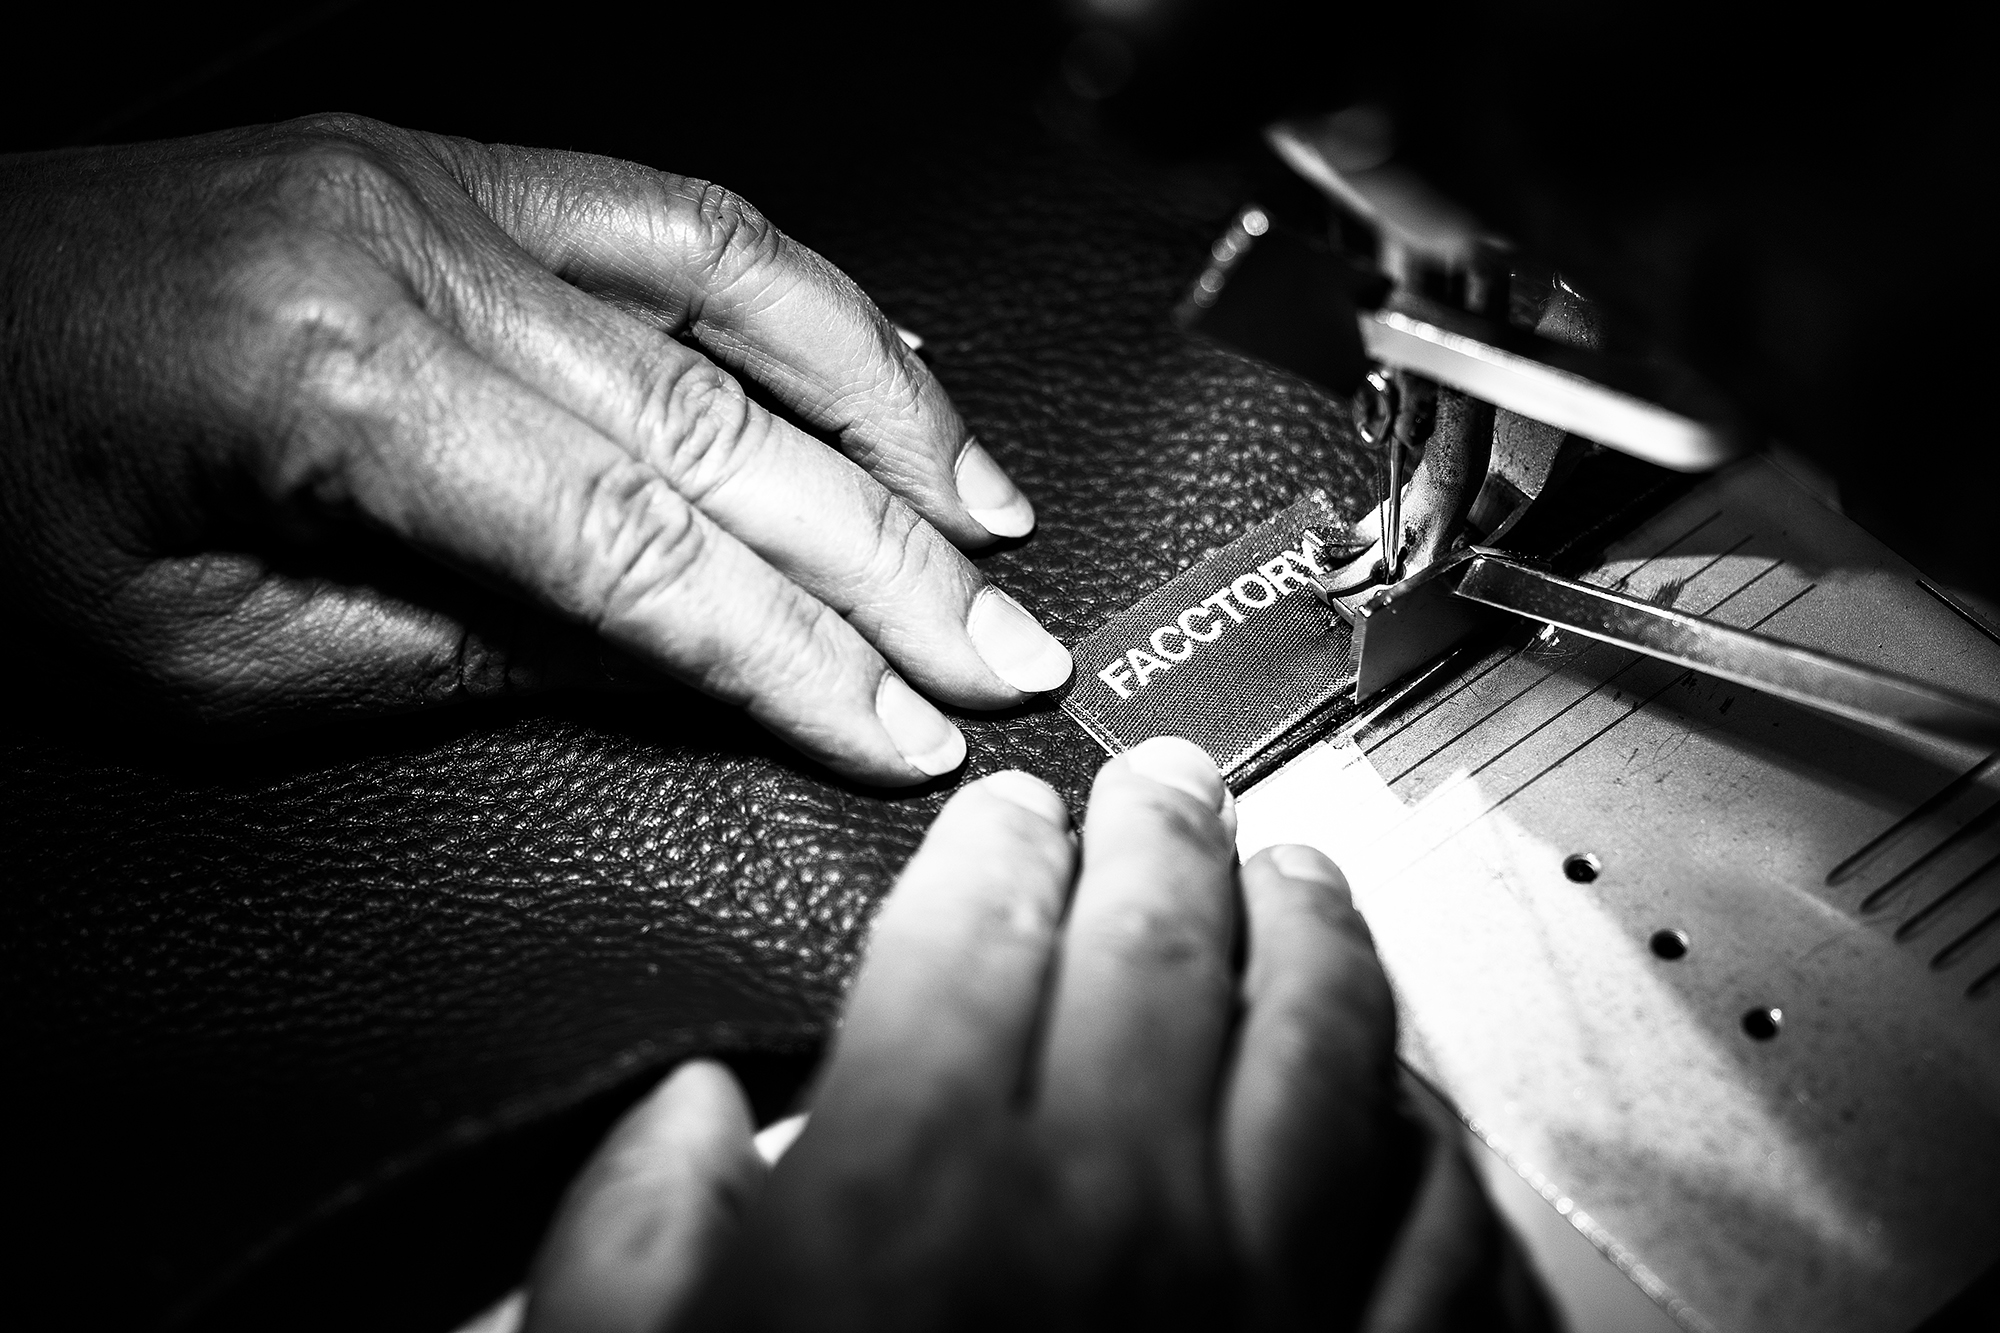 Stitching - Cut pieces of leather and textile are sewn together to form an intricate patchwork, which is itself a piece of top-notch craftsmanship.